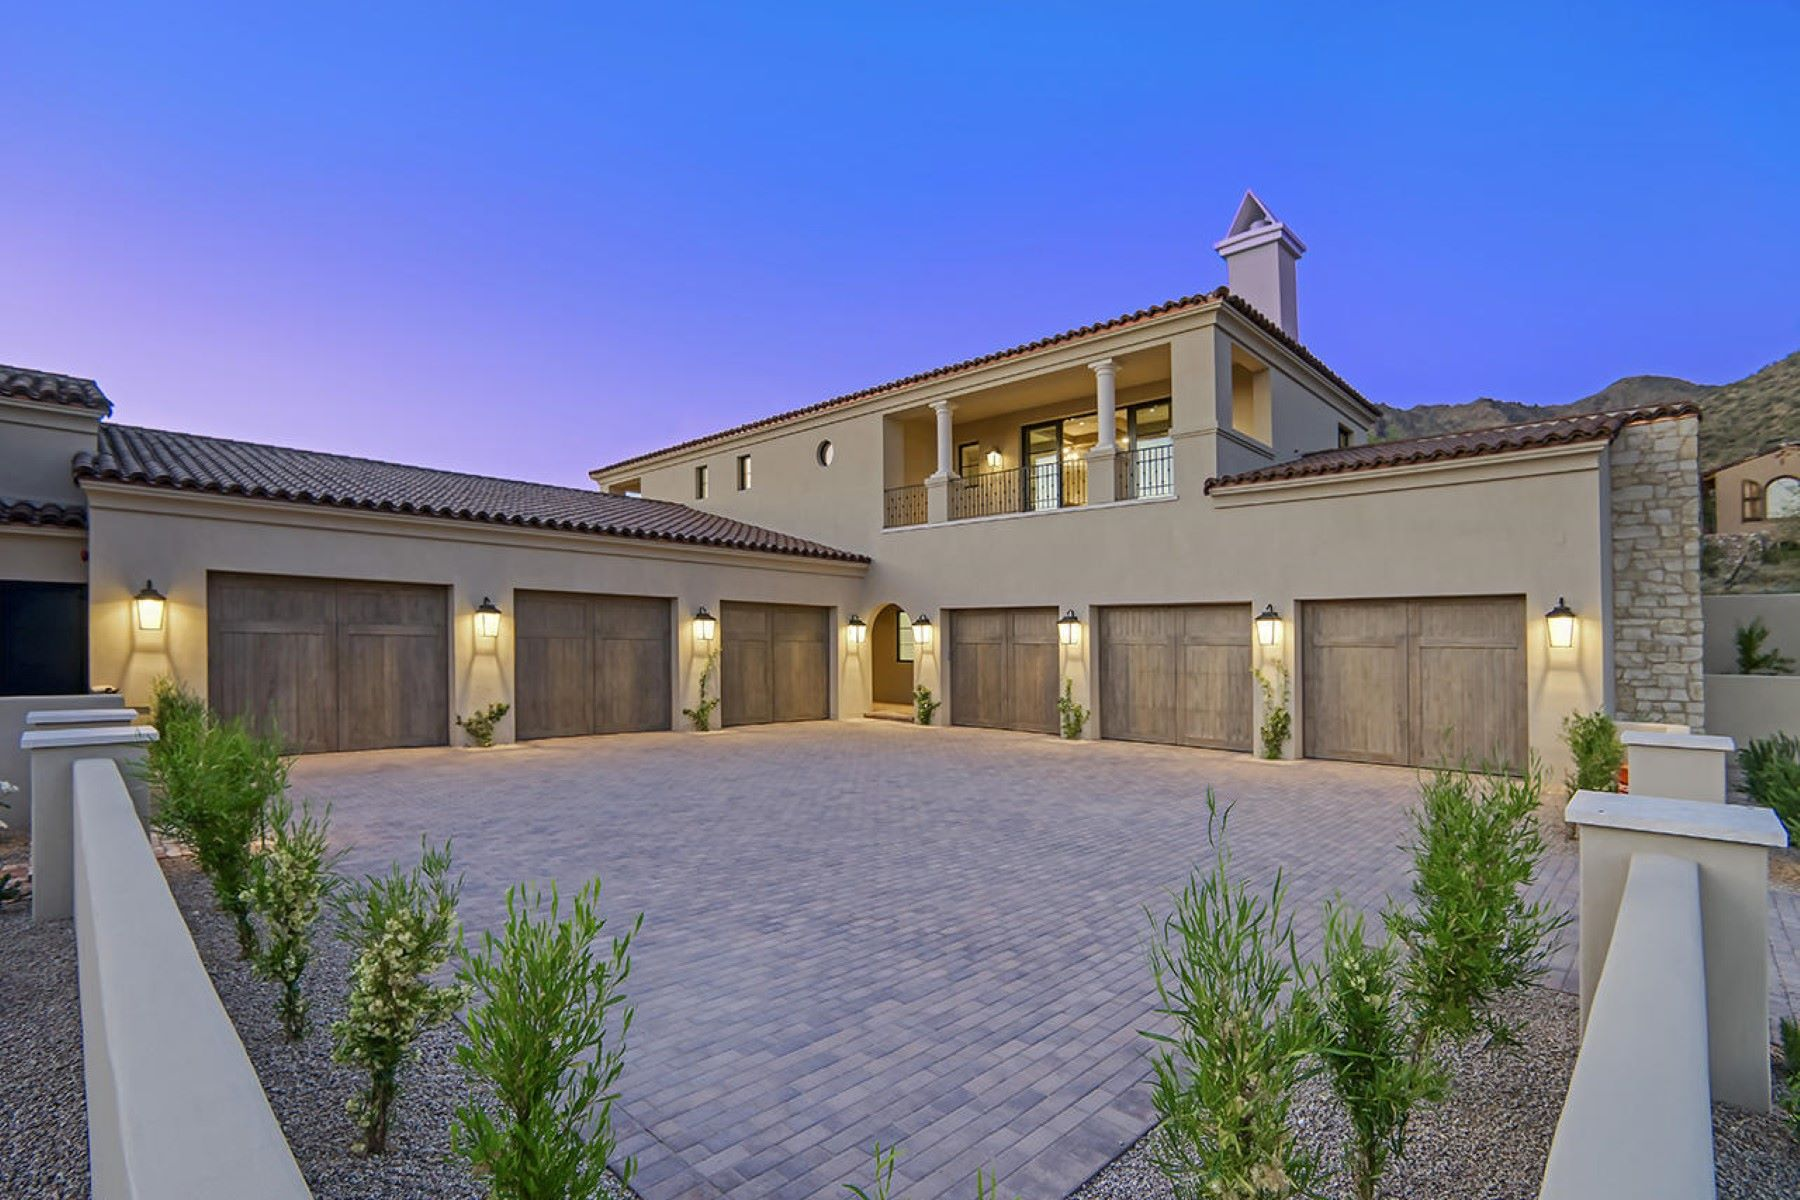 Additional photo for property listing at Silverleaf 11004 E Feathersong LN 斯科茨代尔, 亚利桑那州 85255 美国